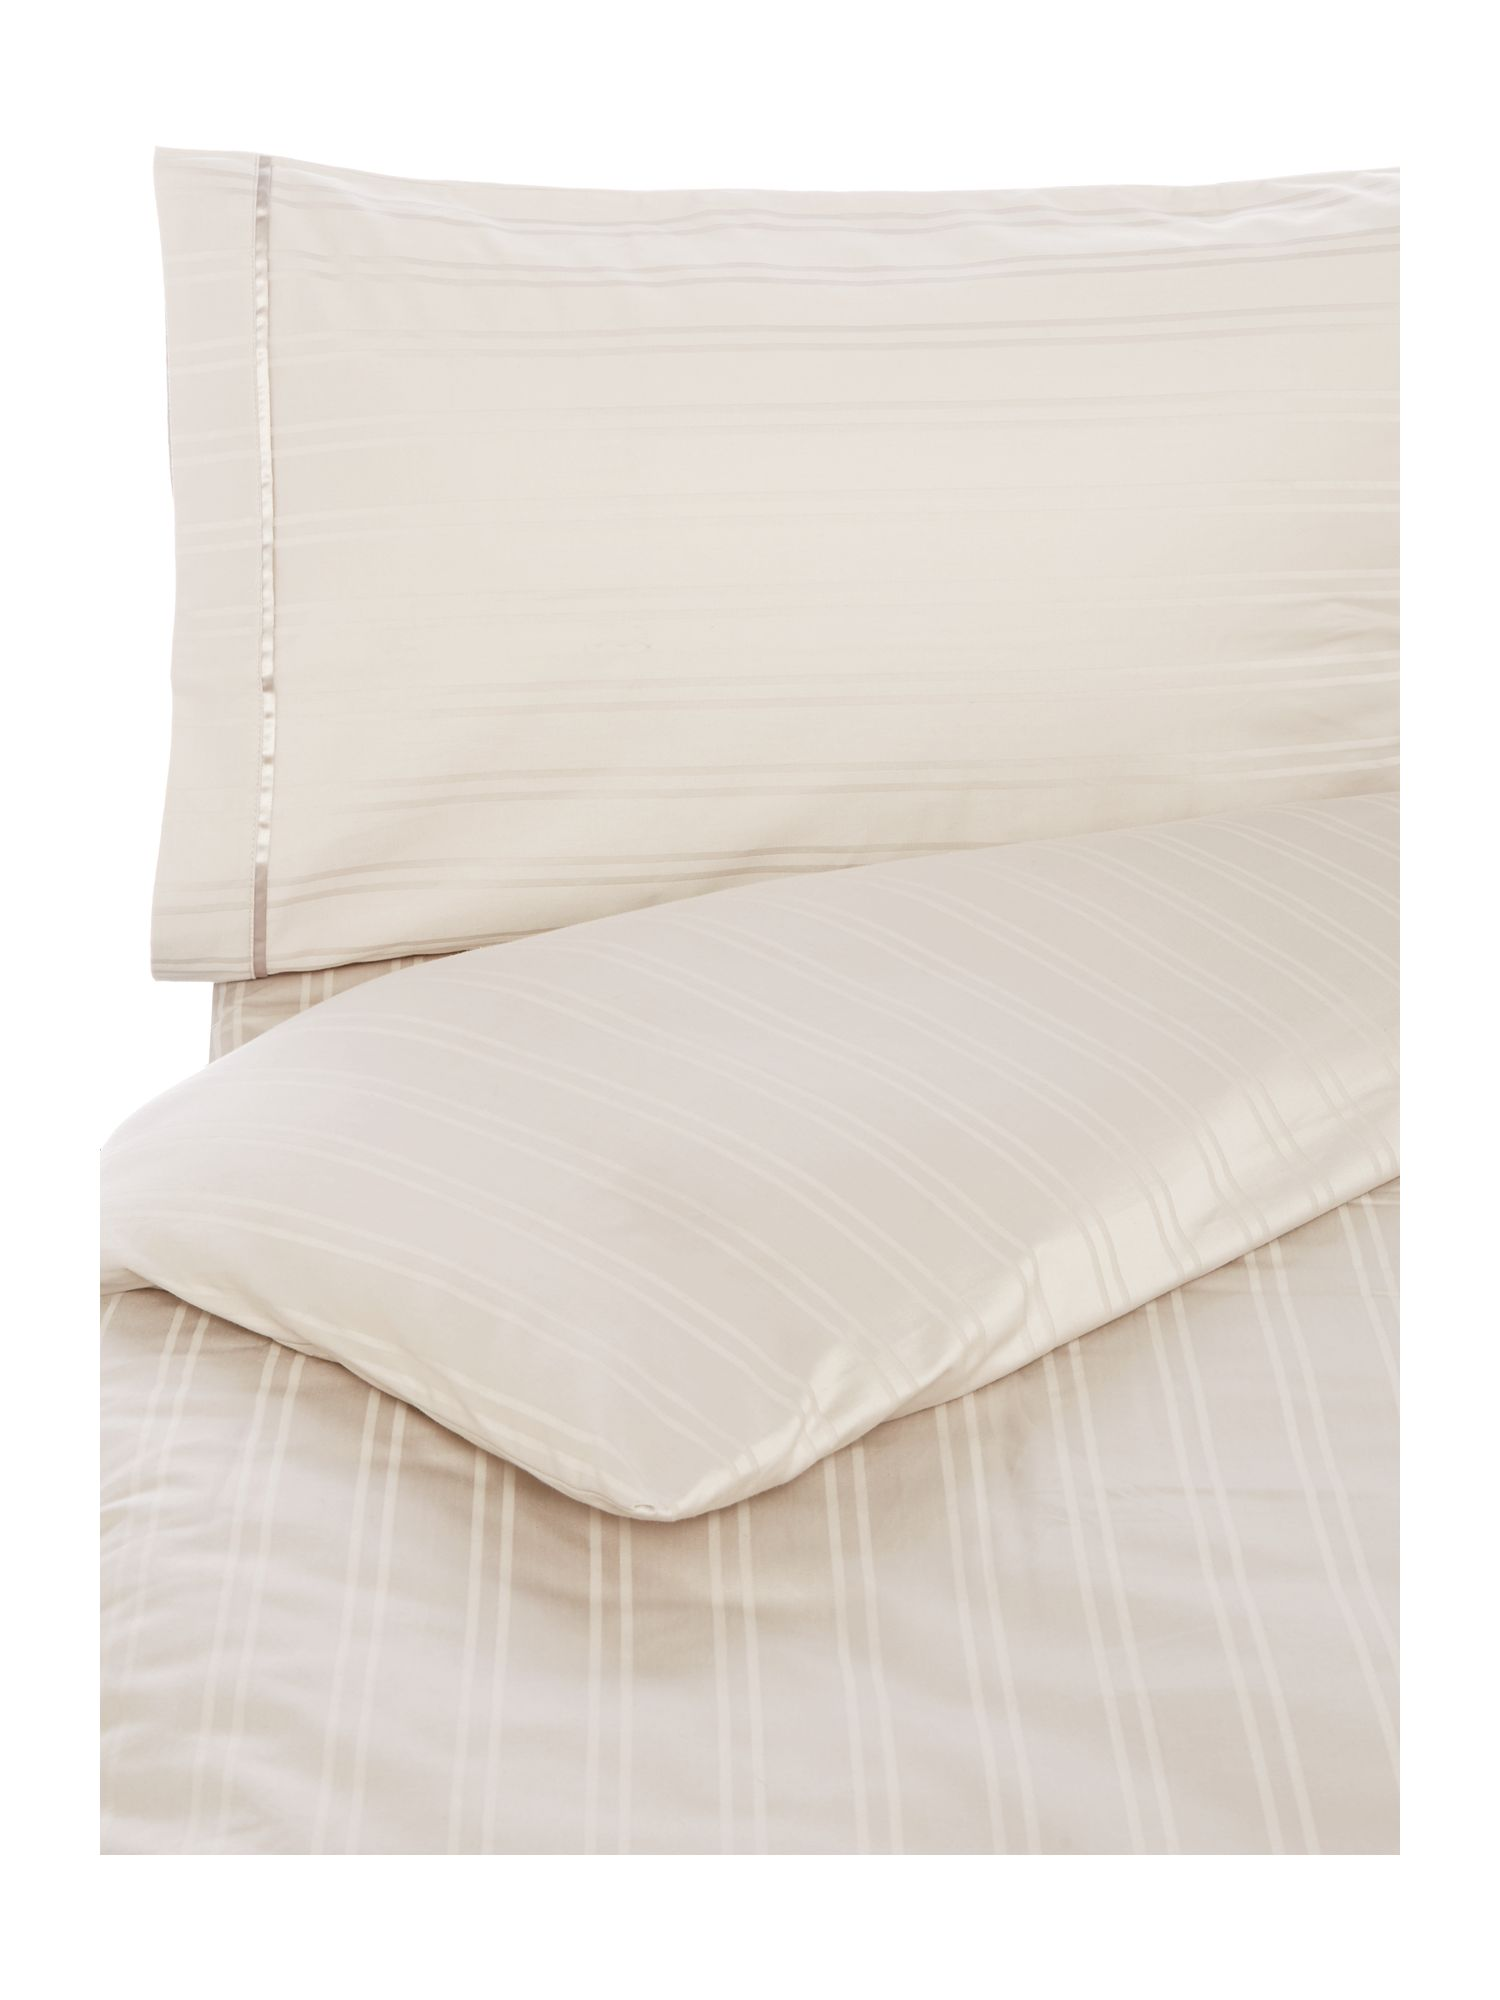 luxury hotel collection woven stripe duvet cover set